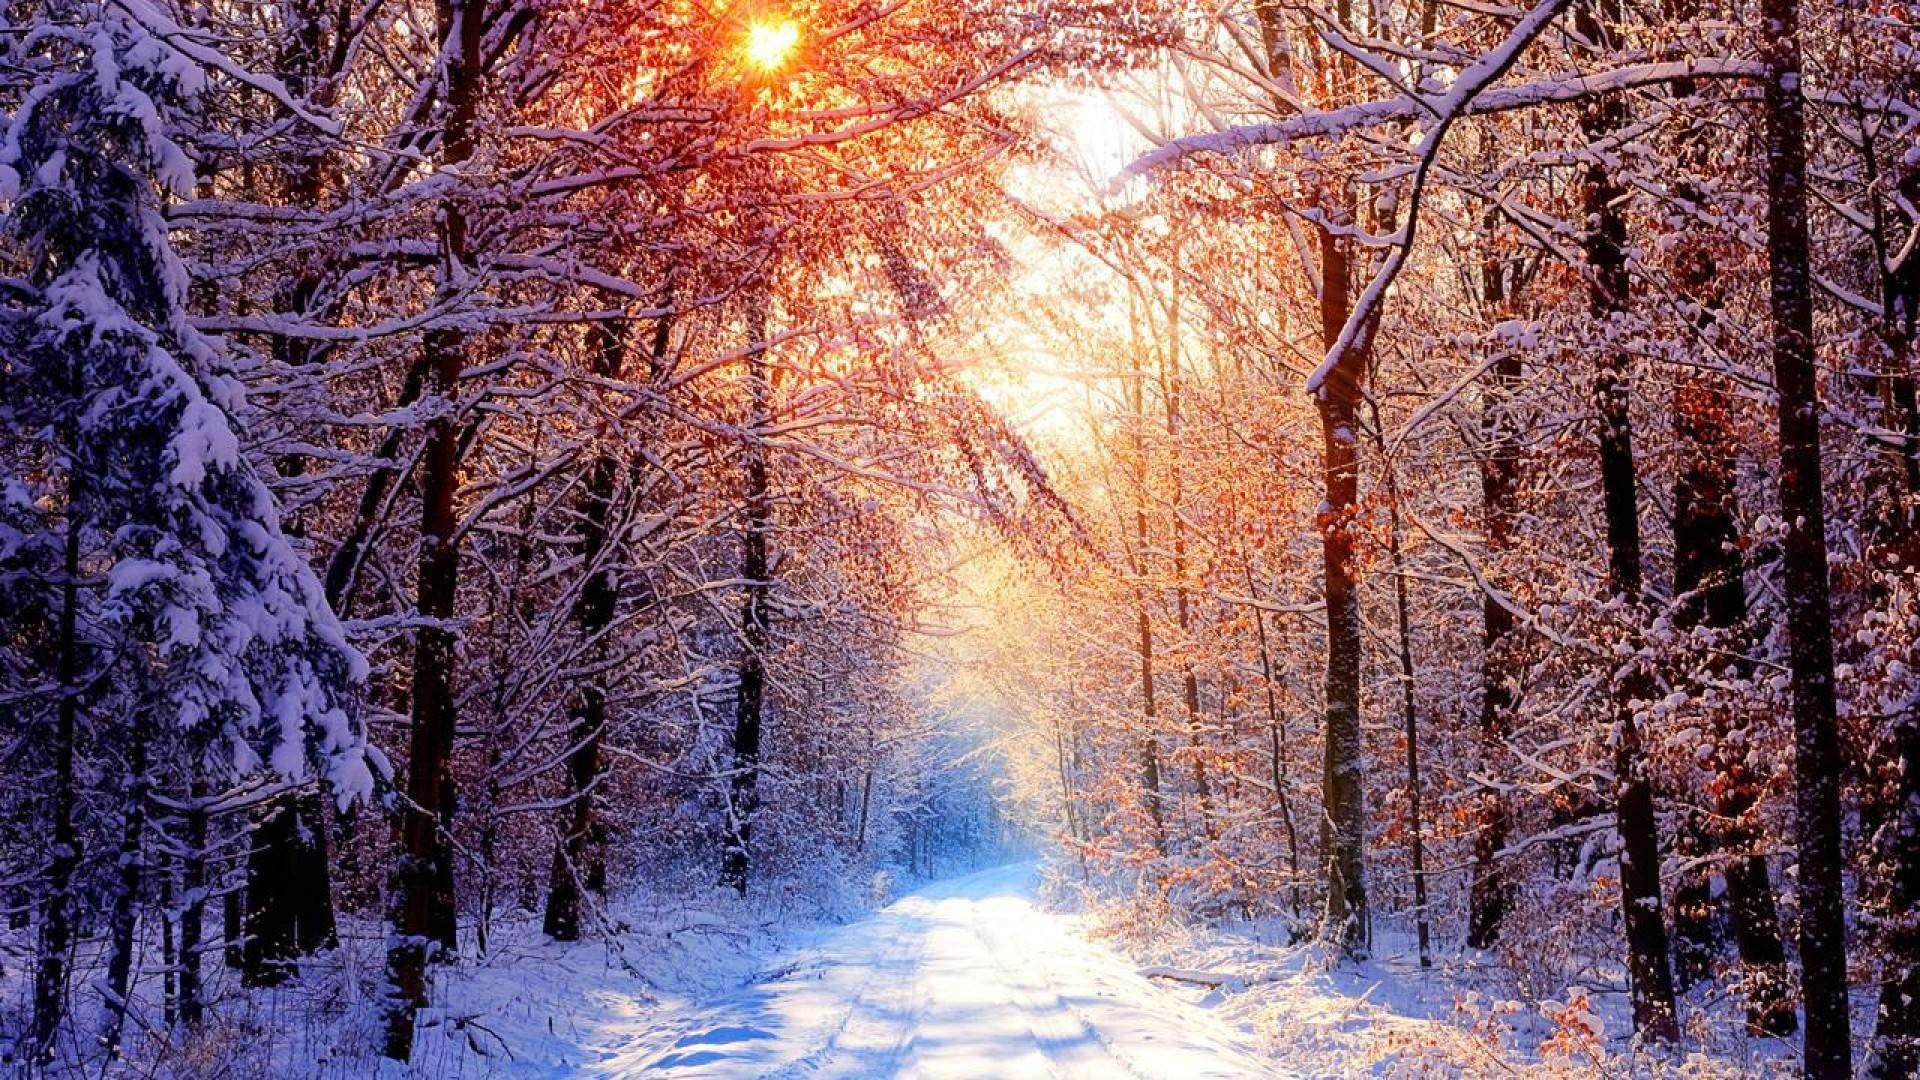 Res: 1920x1080, Like or share Creek Winter Forest Wallpapers X Winter Snowy Forest .